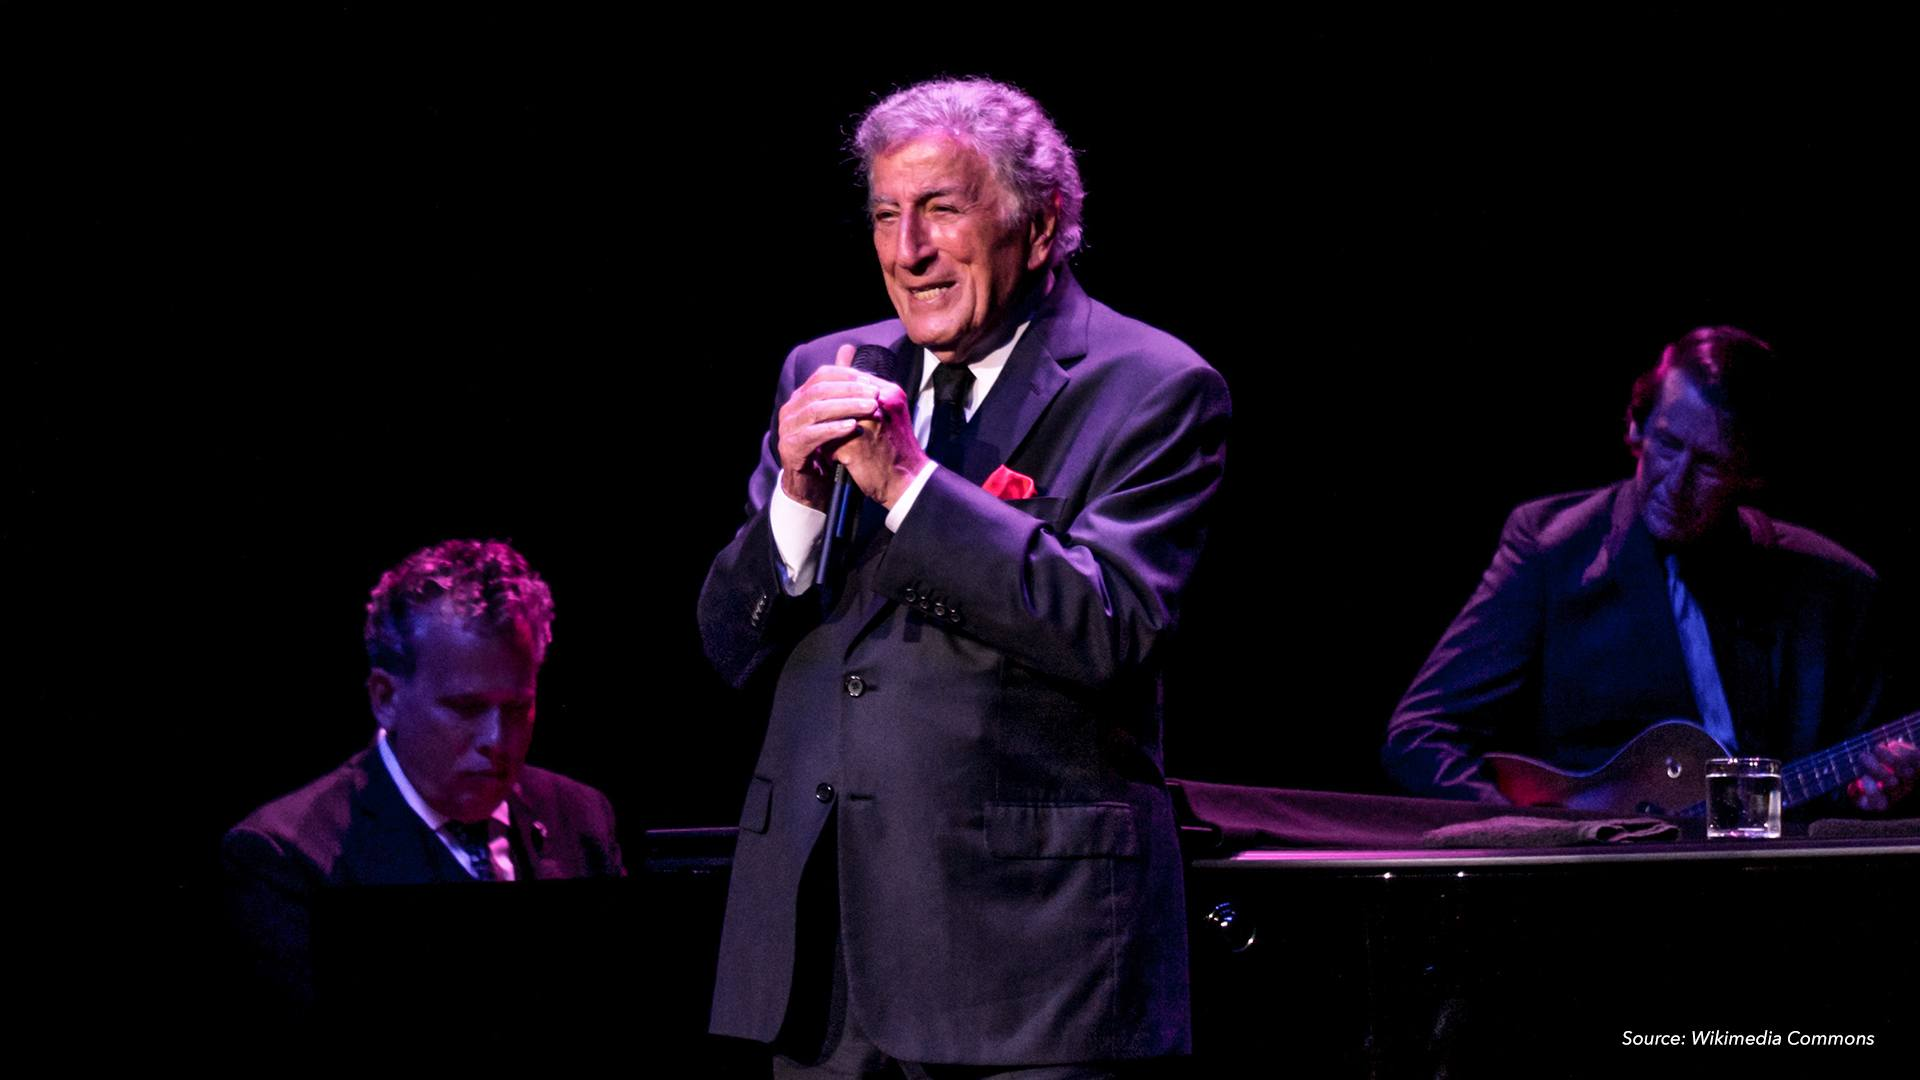 What We Can Learn About Alzheimer's from Tony Bennett